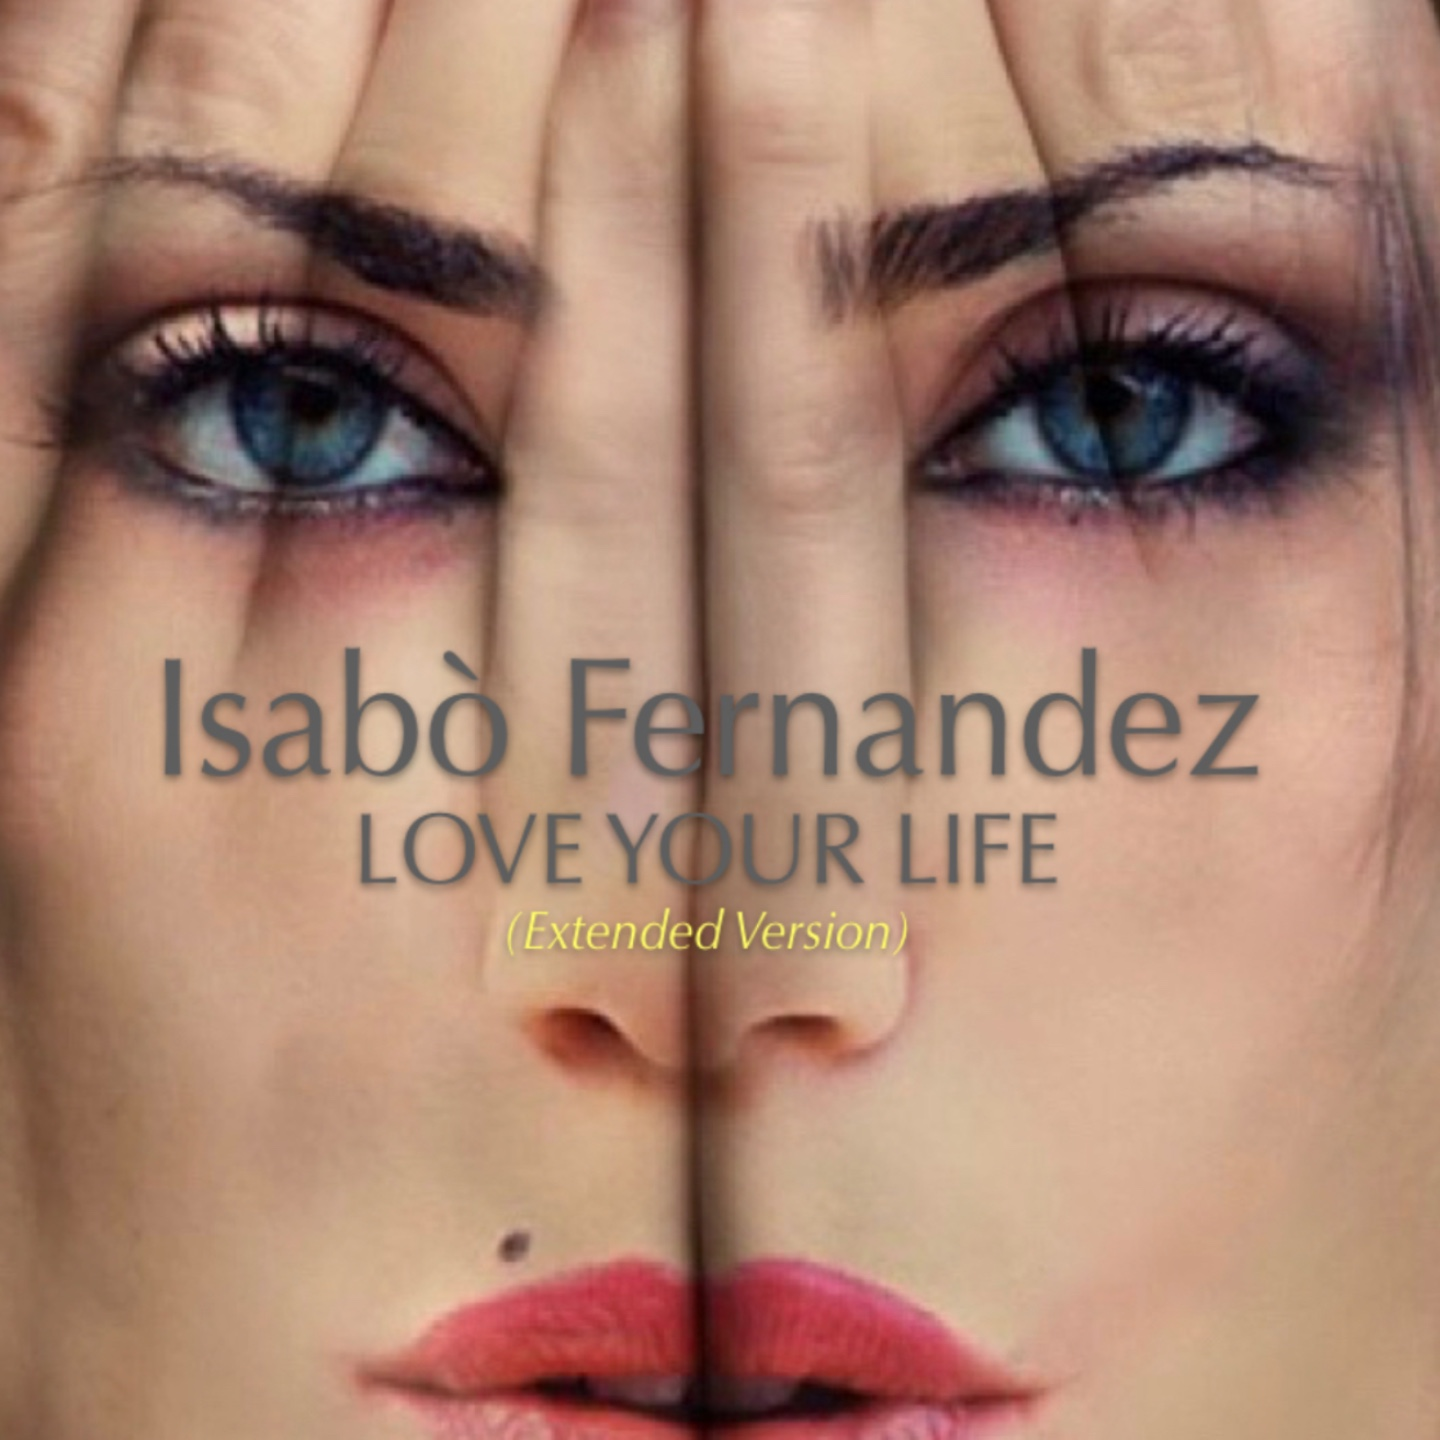 ISABO' FERNADEZ's single LOVE YOUR LIFE (Extended Version) available from May 2020.